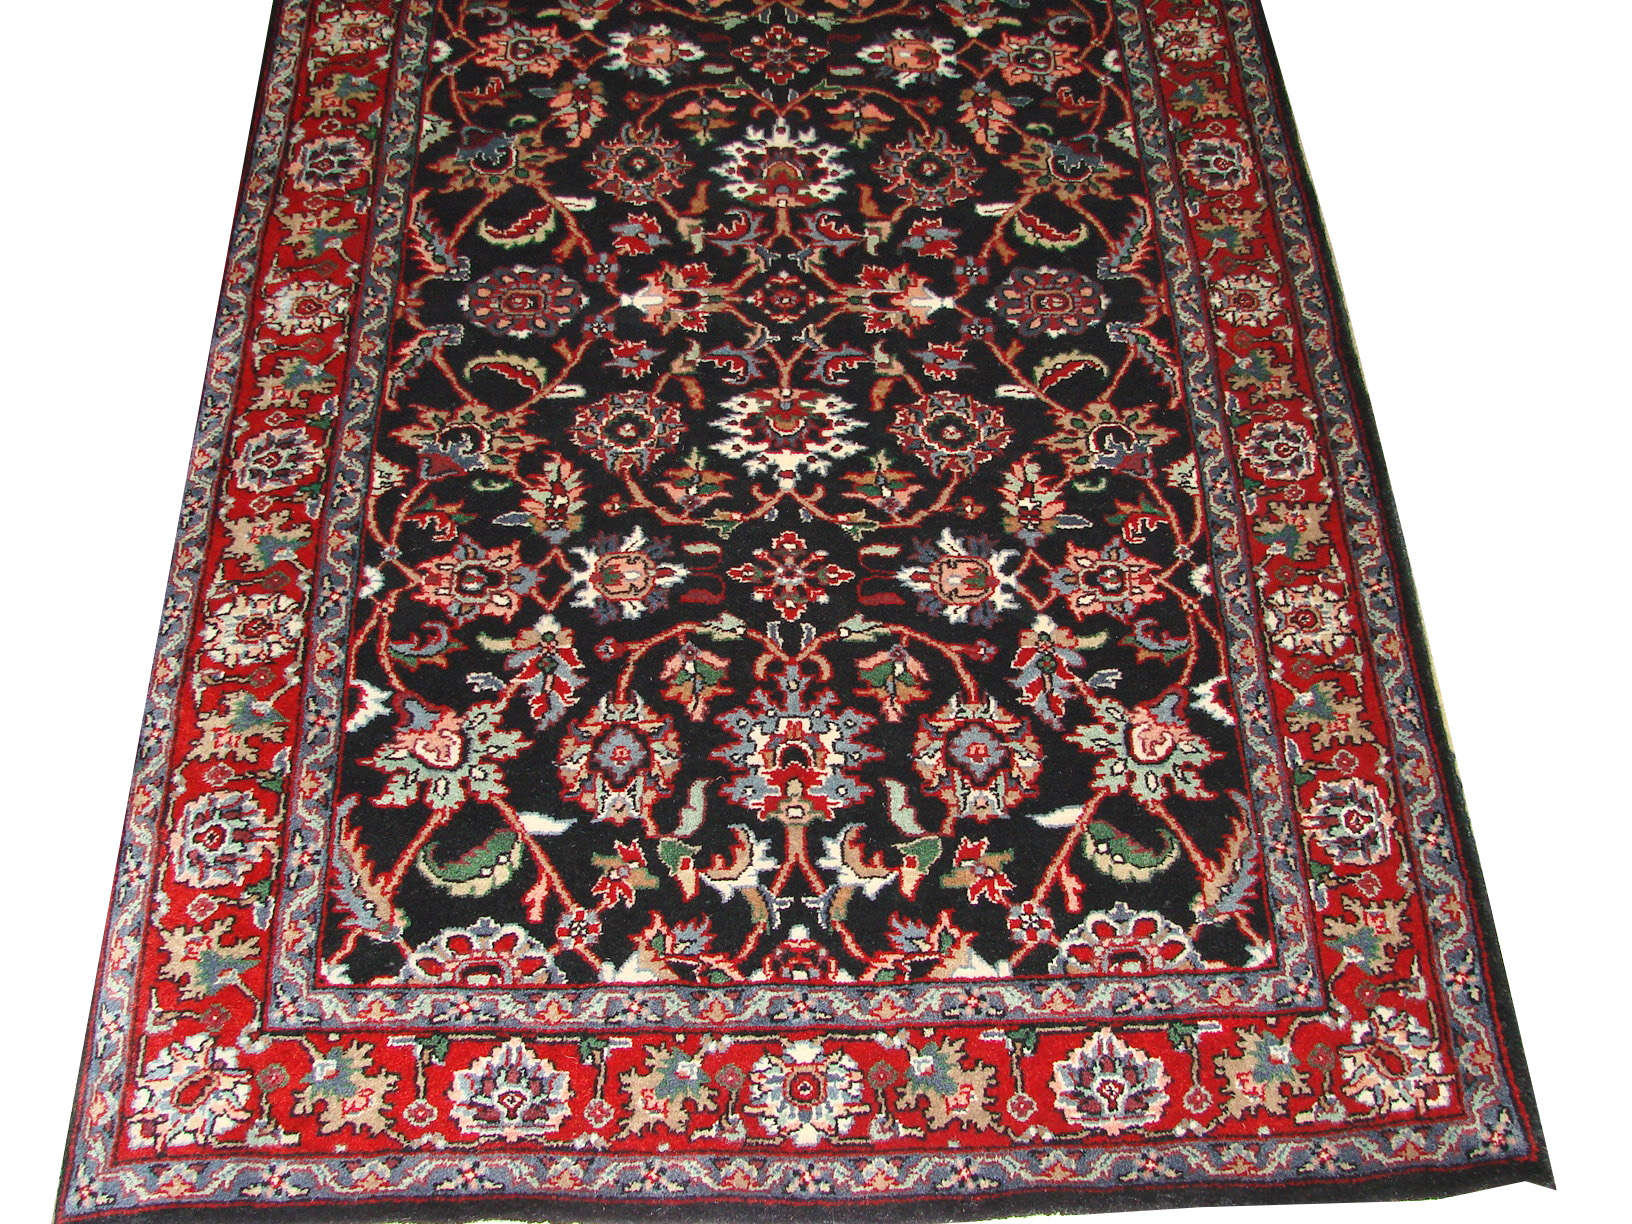 3x5 Traditional Hand Knotted Wool Area Rug - MR1482